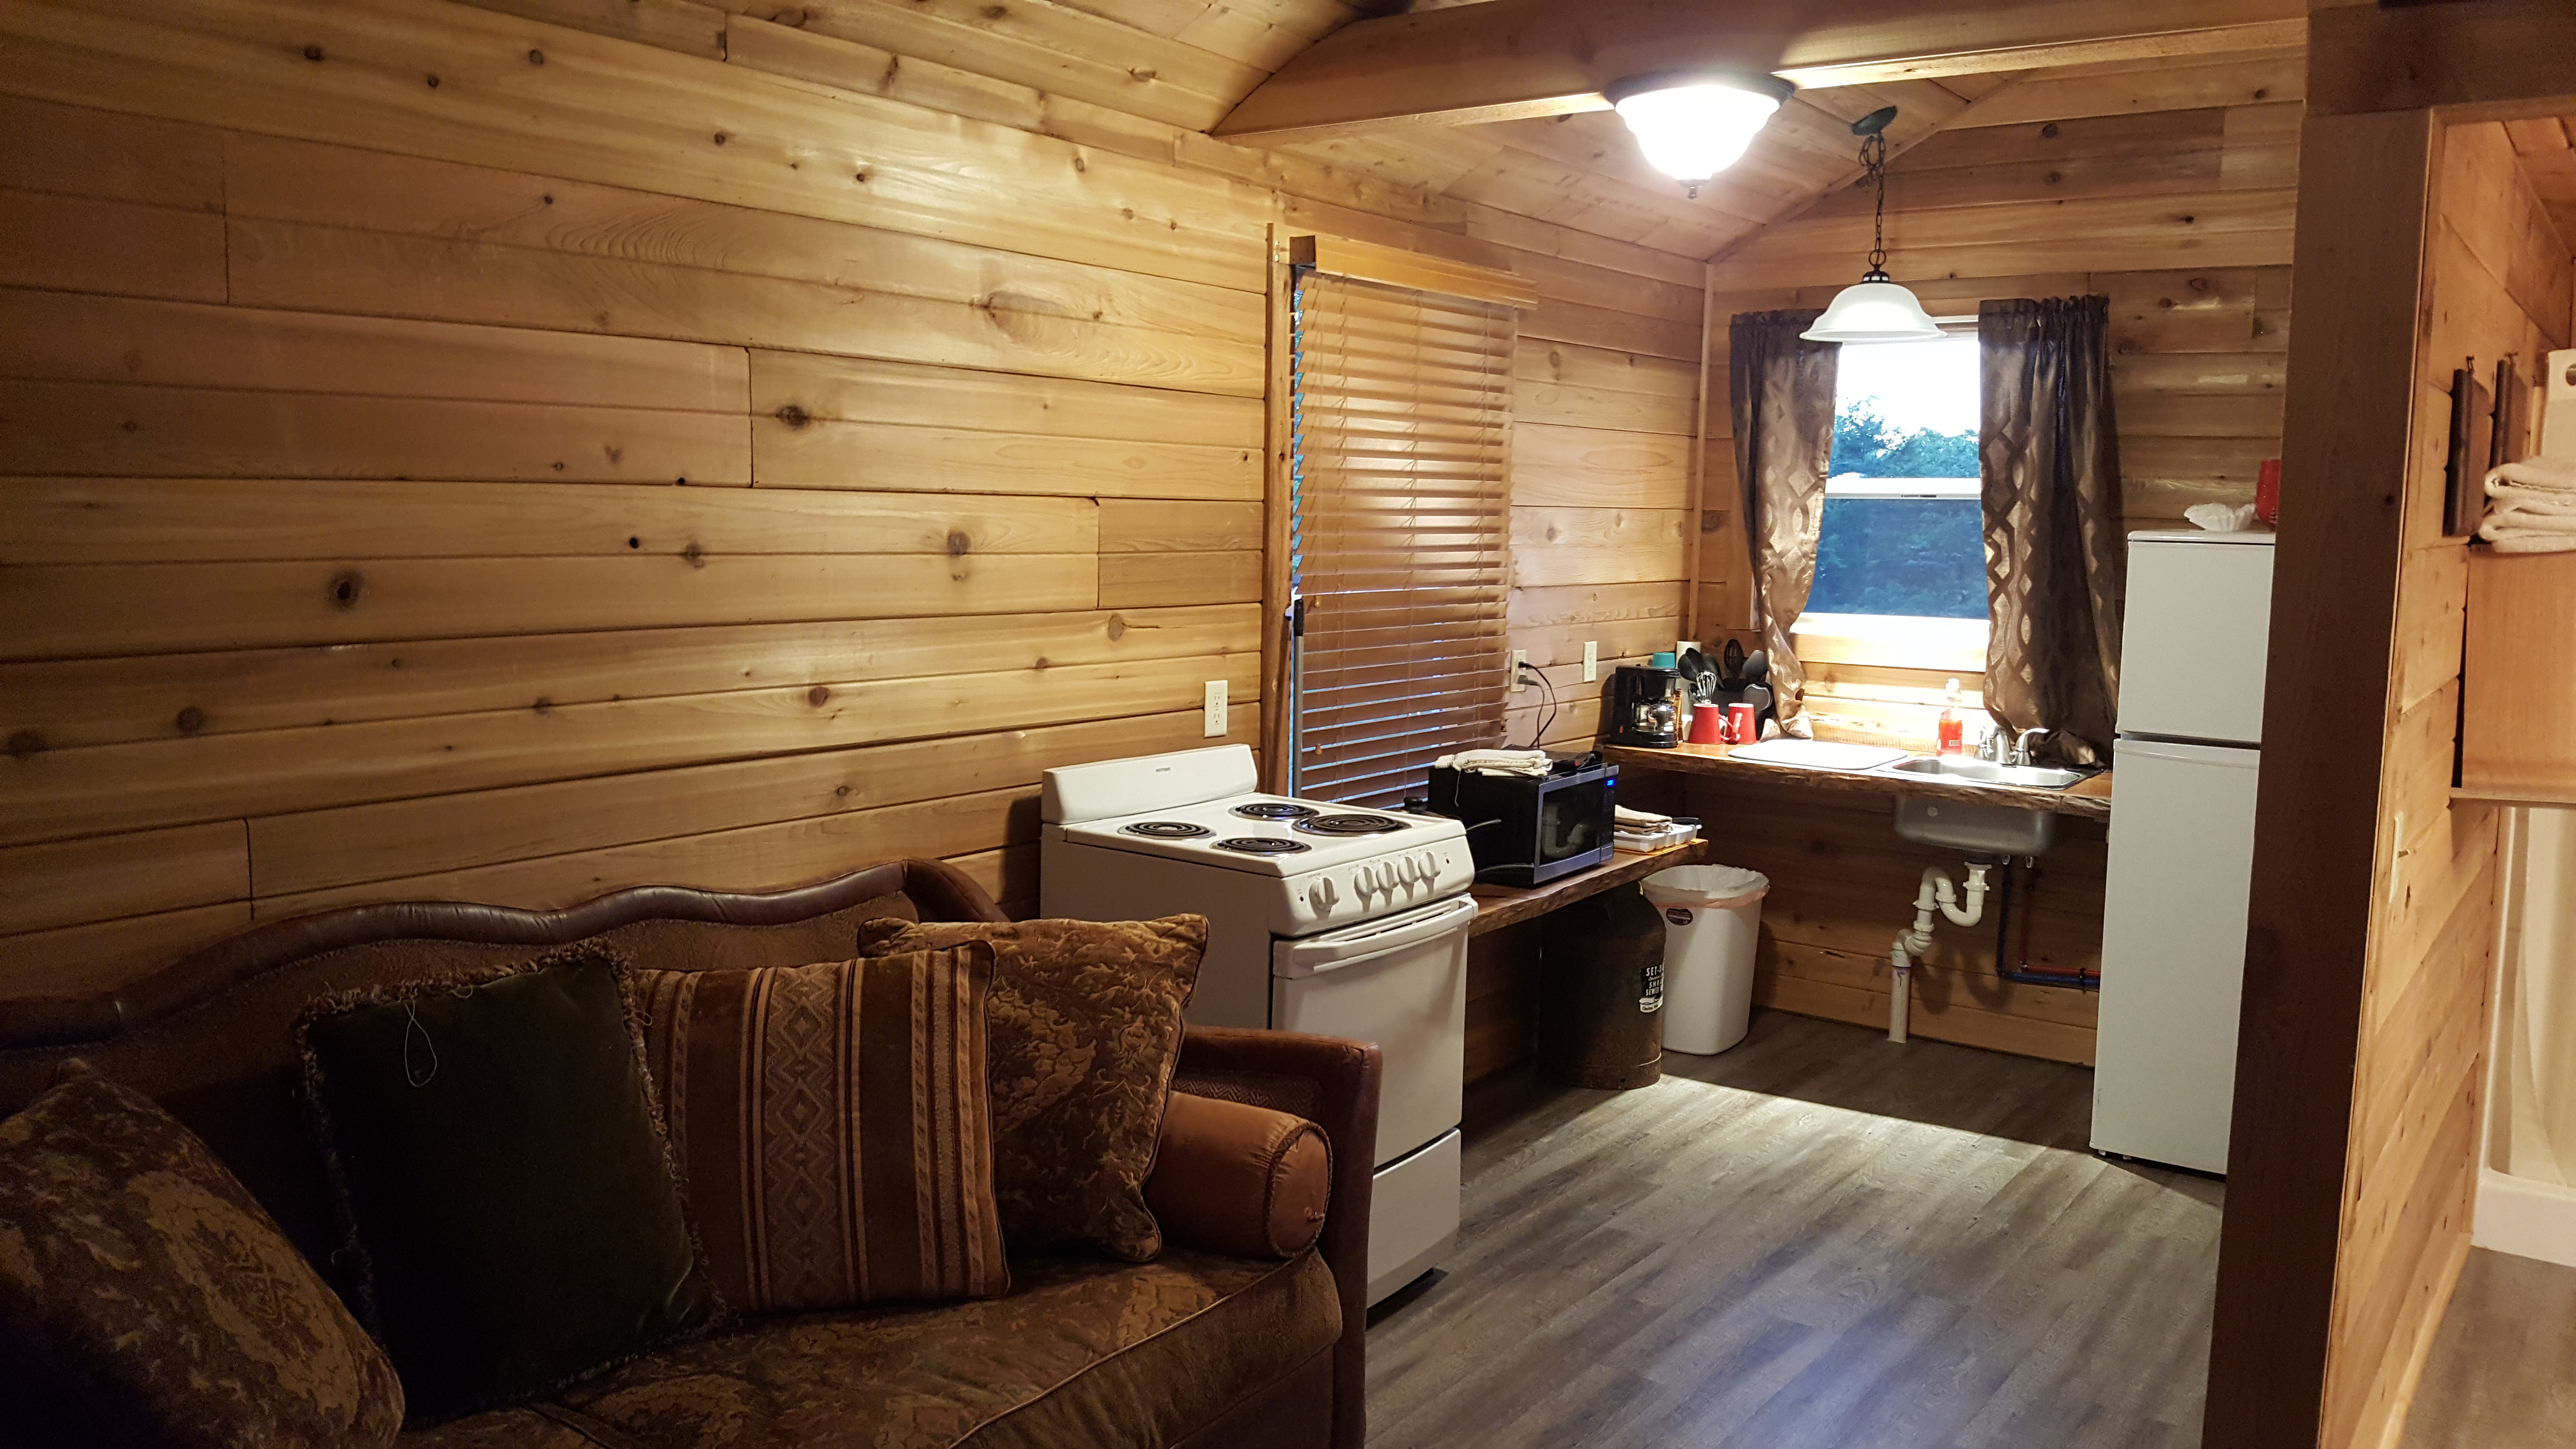 """DELUXE CABIN # 17 - $165/ 2 people, $15 each additional – (Yogi Cabin, Railroad themed) 2 full beds, 1 queen bed. Full kitchen, 32' deck. Handicap accessiblewith grab bars in bathroom, walk-in shower, wheelchair height counters and sinks and 36"""" sliding bath and bedroom doors."""